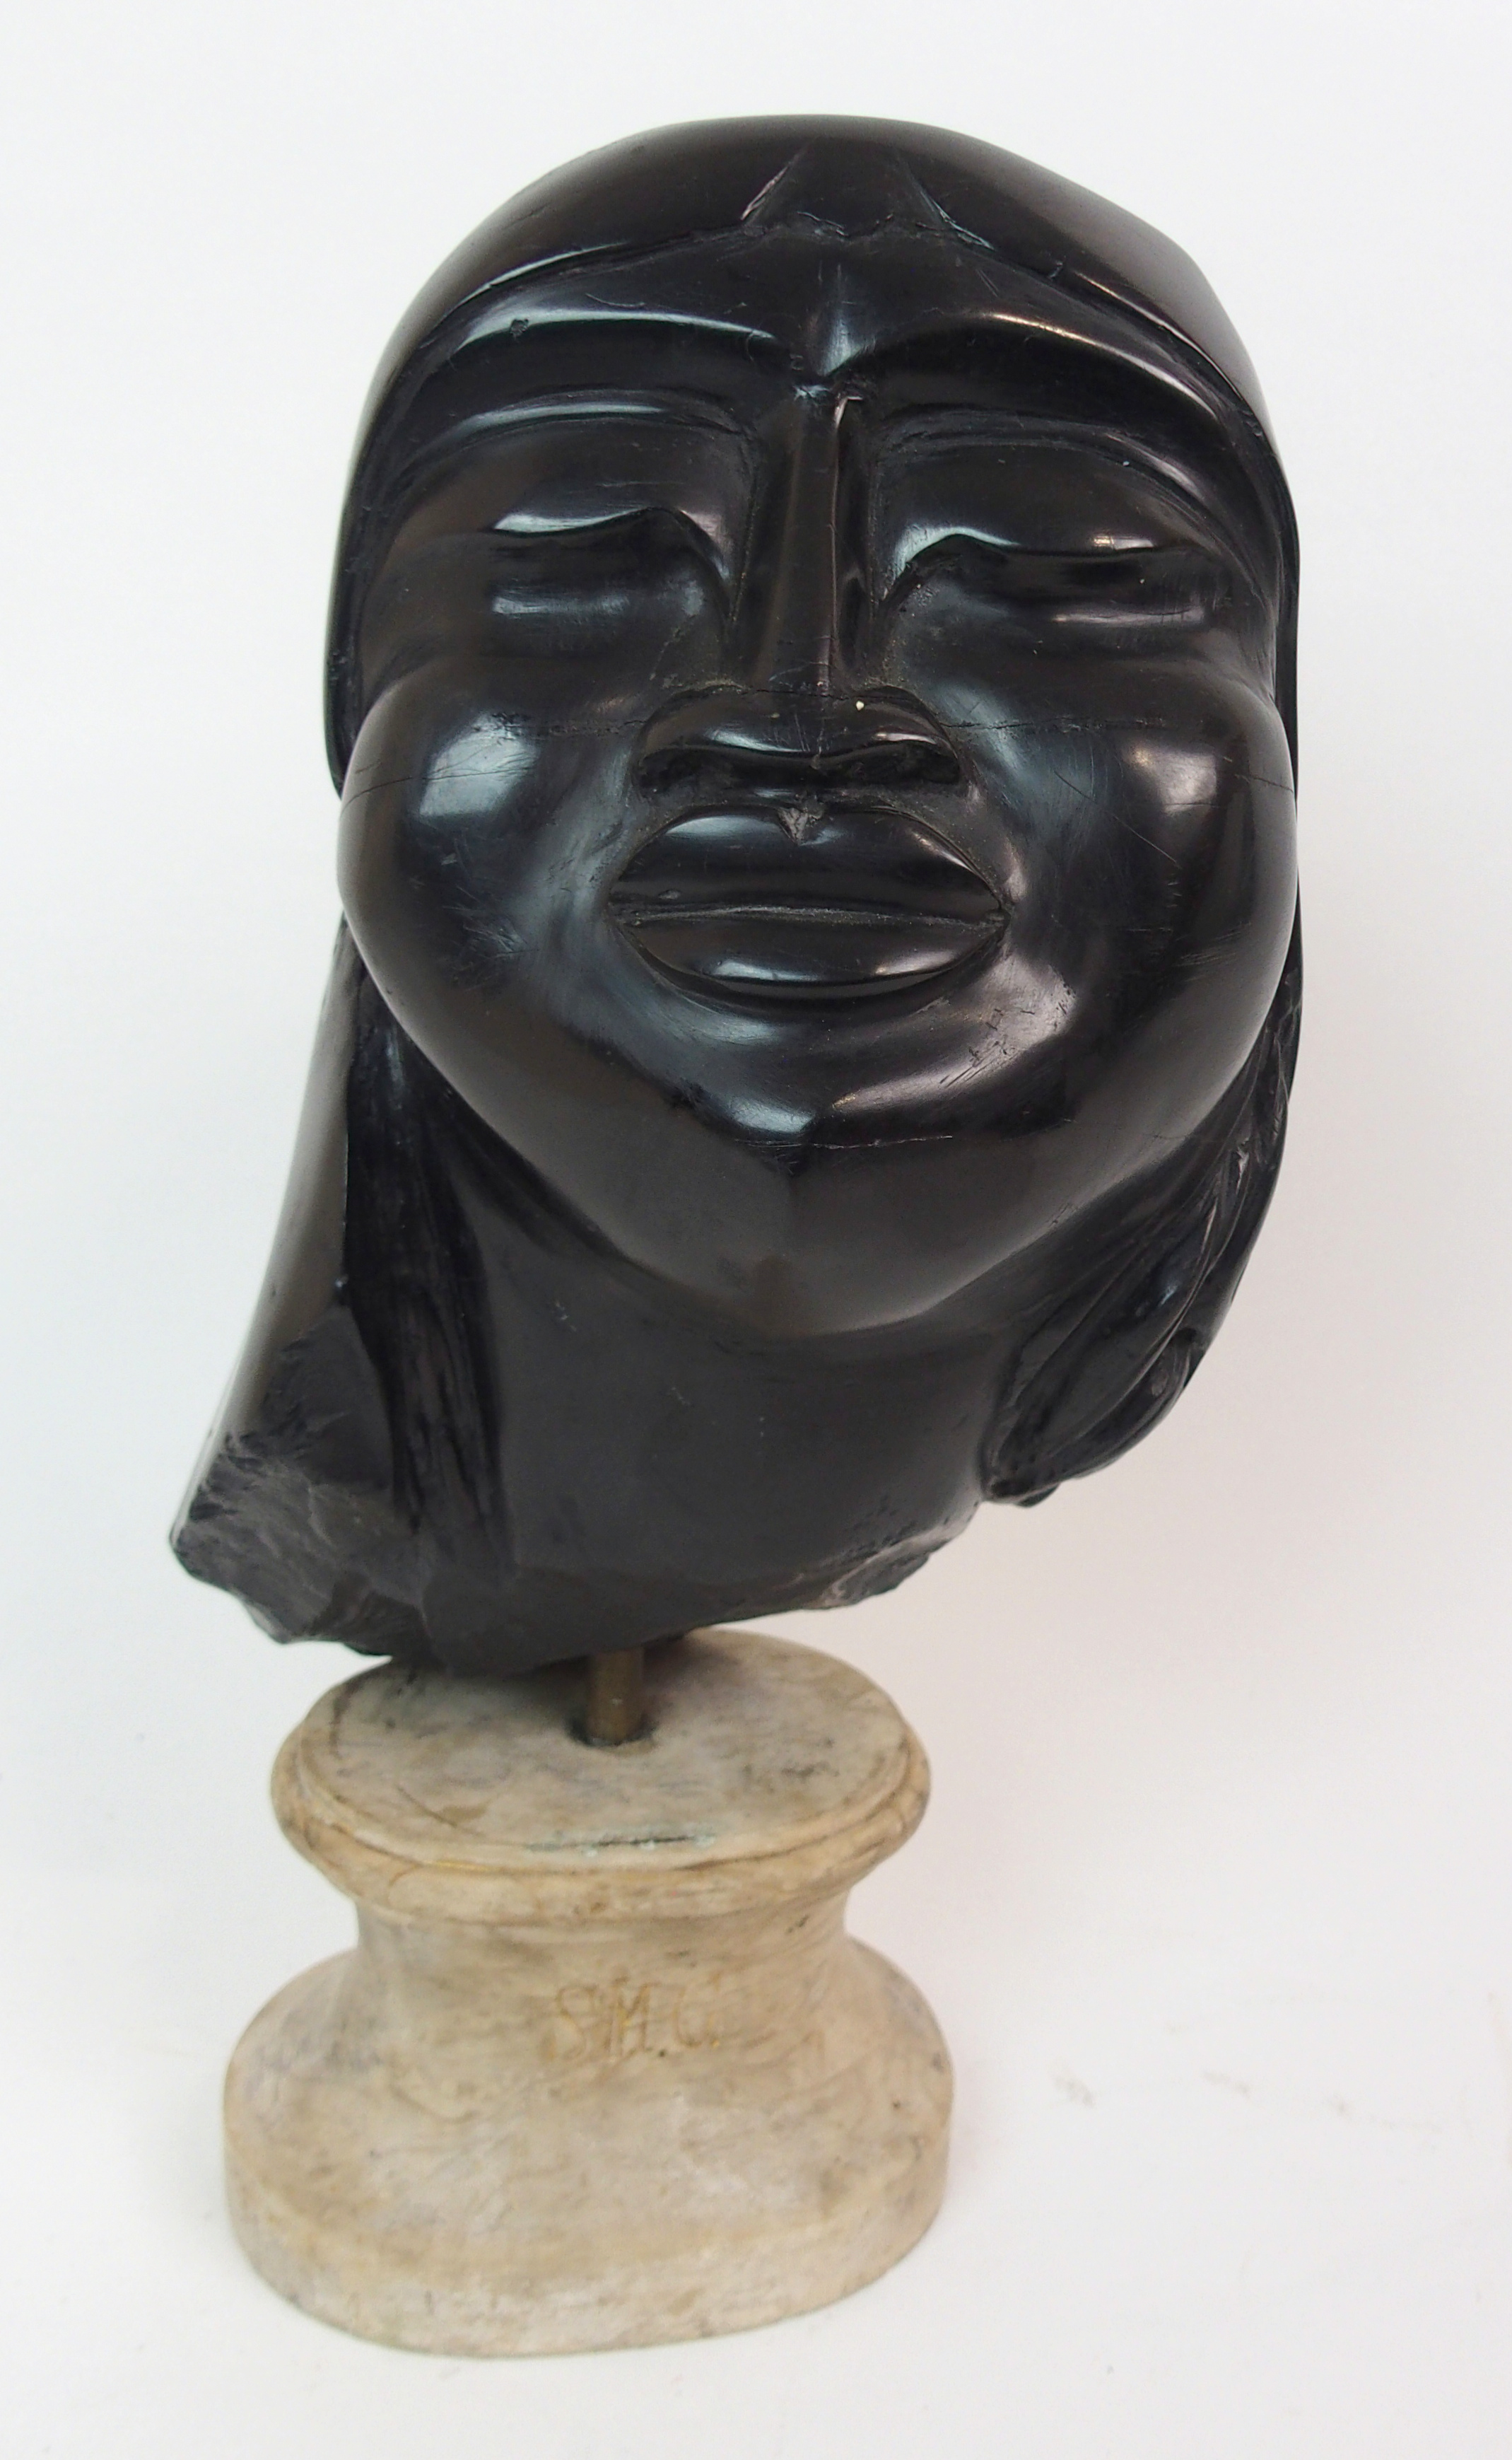 Lot 57 - A COAL CARVED HEAD OF A WOMAN wearing headband and with a marble socle engraved SMC, the head 20cm